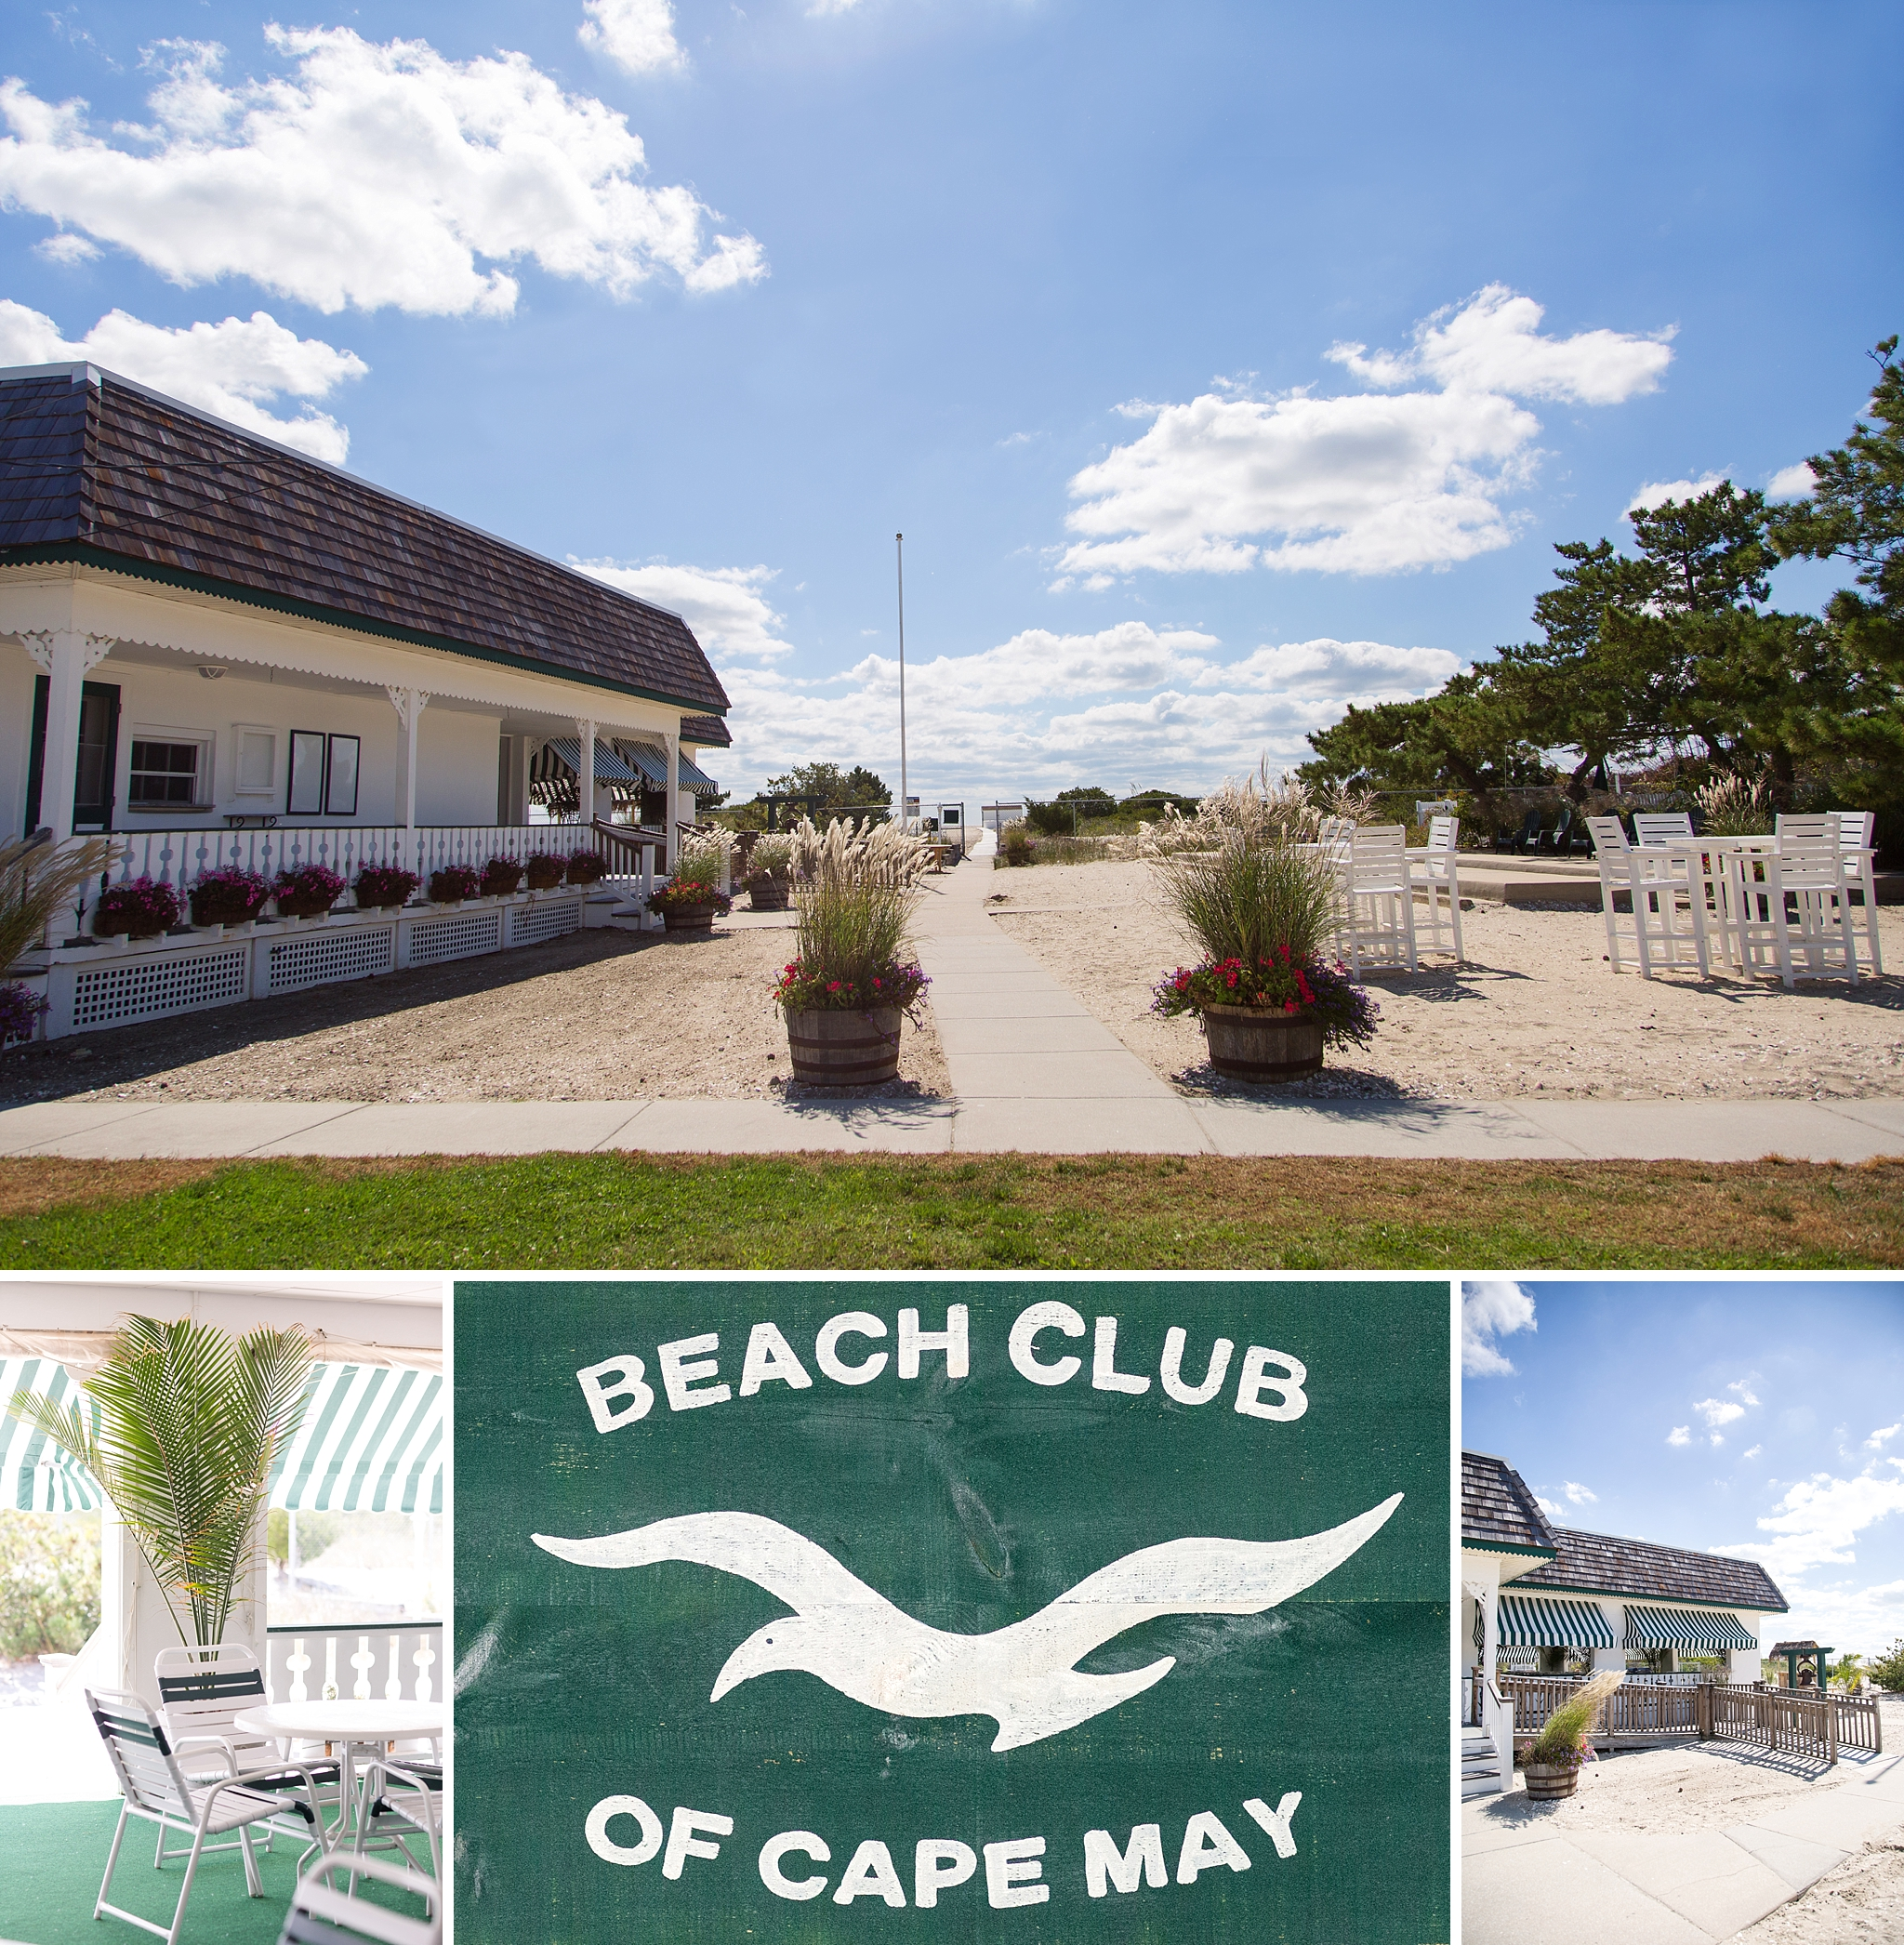 2017-Beach-Club-Of-Cape-May-Corinthian-Yacht-Club-Wedding-Cape-May-Wedding-Photographer-Limefish-Studio-Photography-001